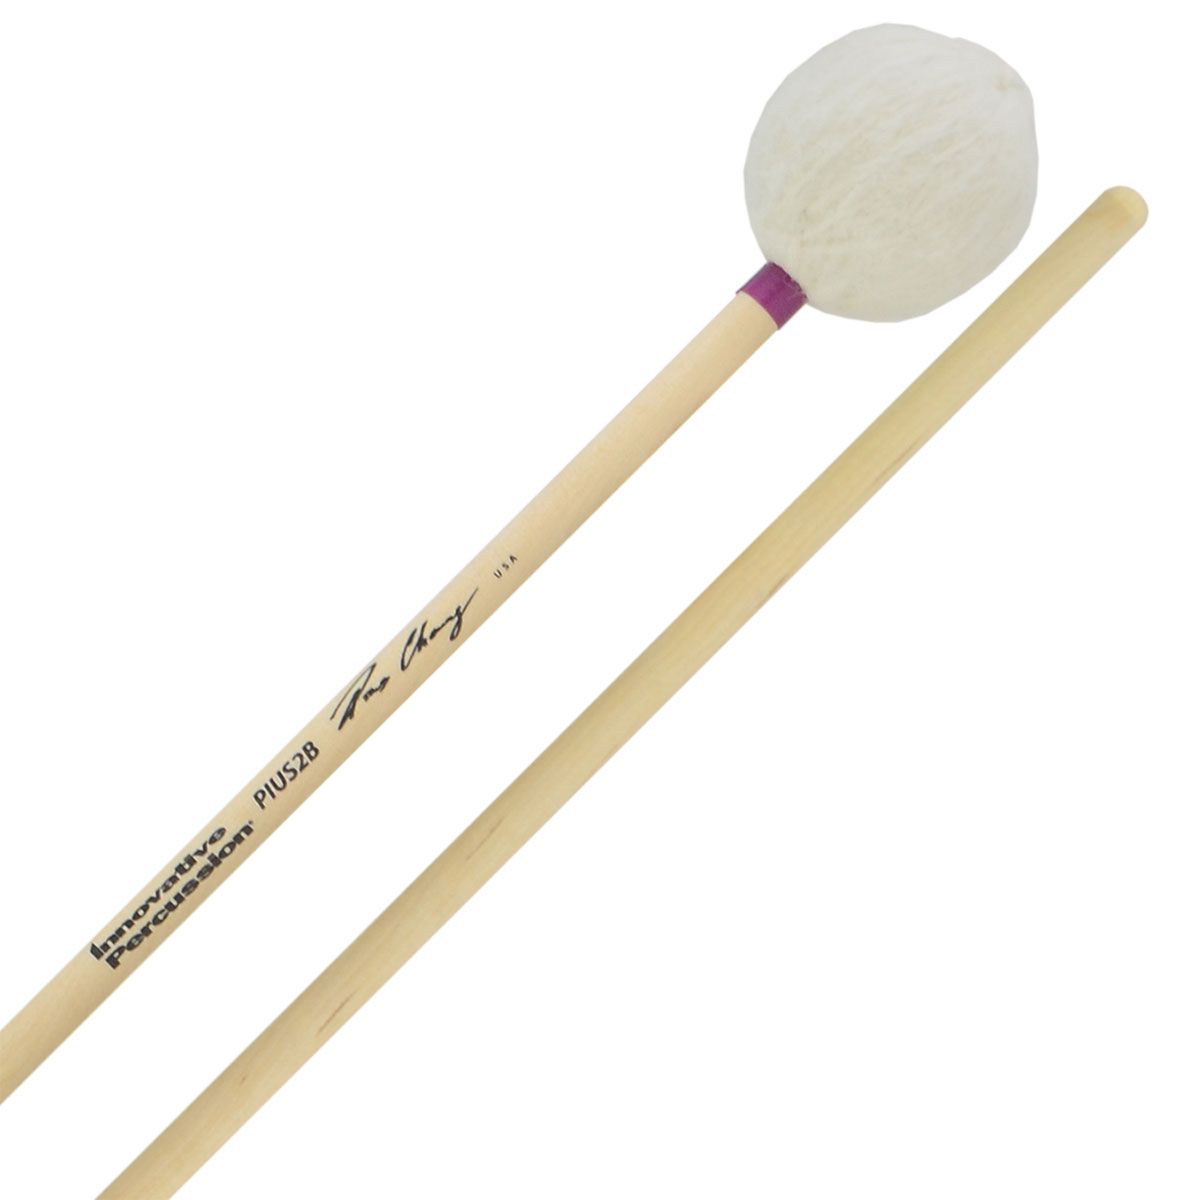 Innovative Percussion Pius Cheung Medium Soft Marimba Mallets with Birch Handles